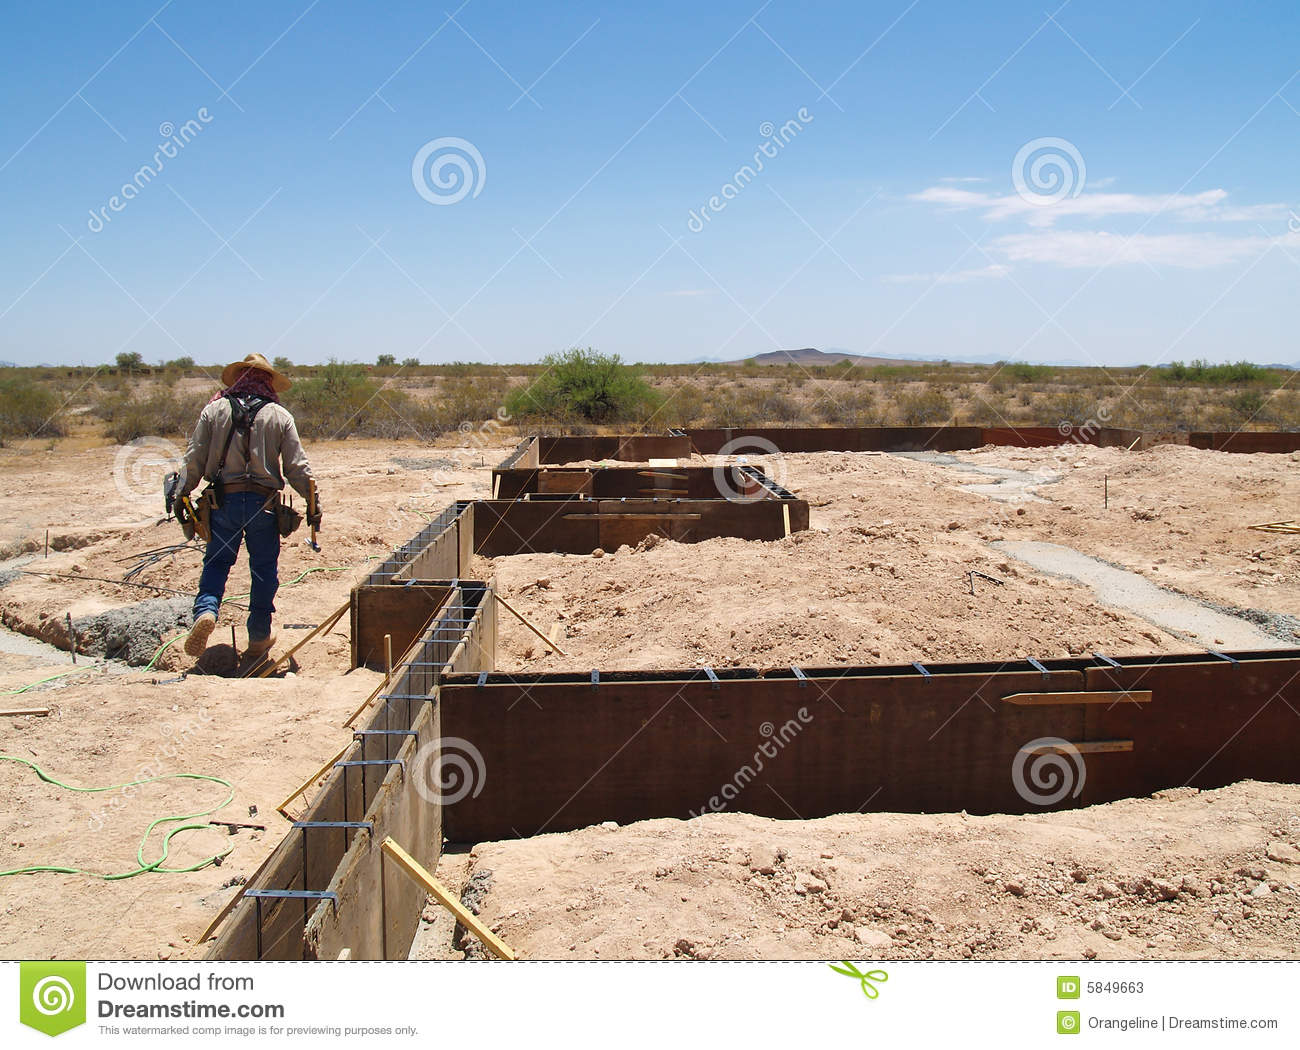 Worker Is Working On An Excavation Site  He Is Walking Over A Trench